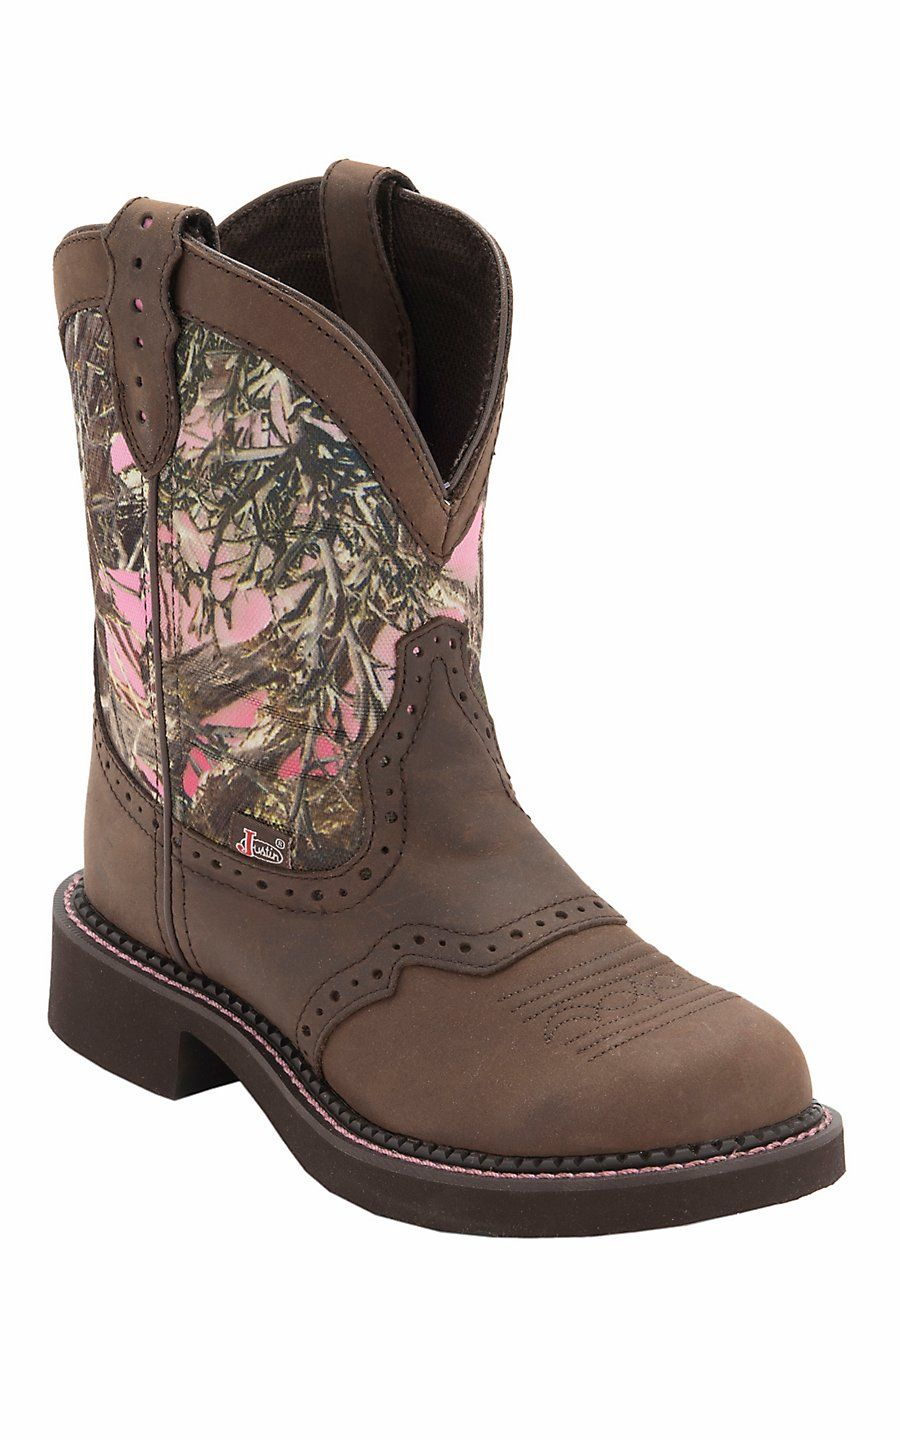 justin collection distressed brown w pink